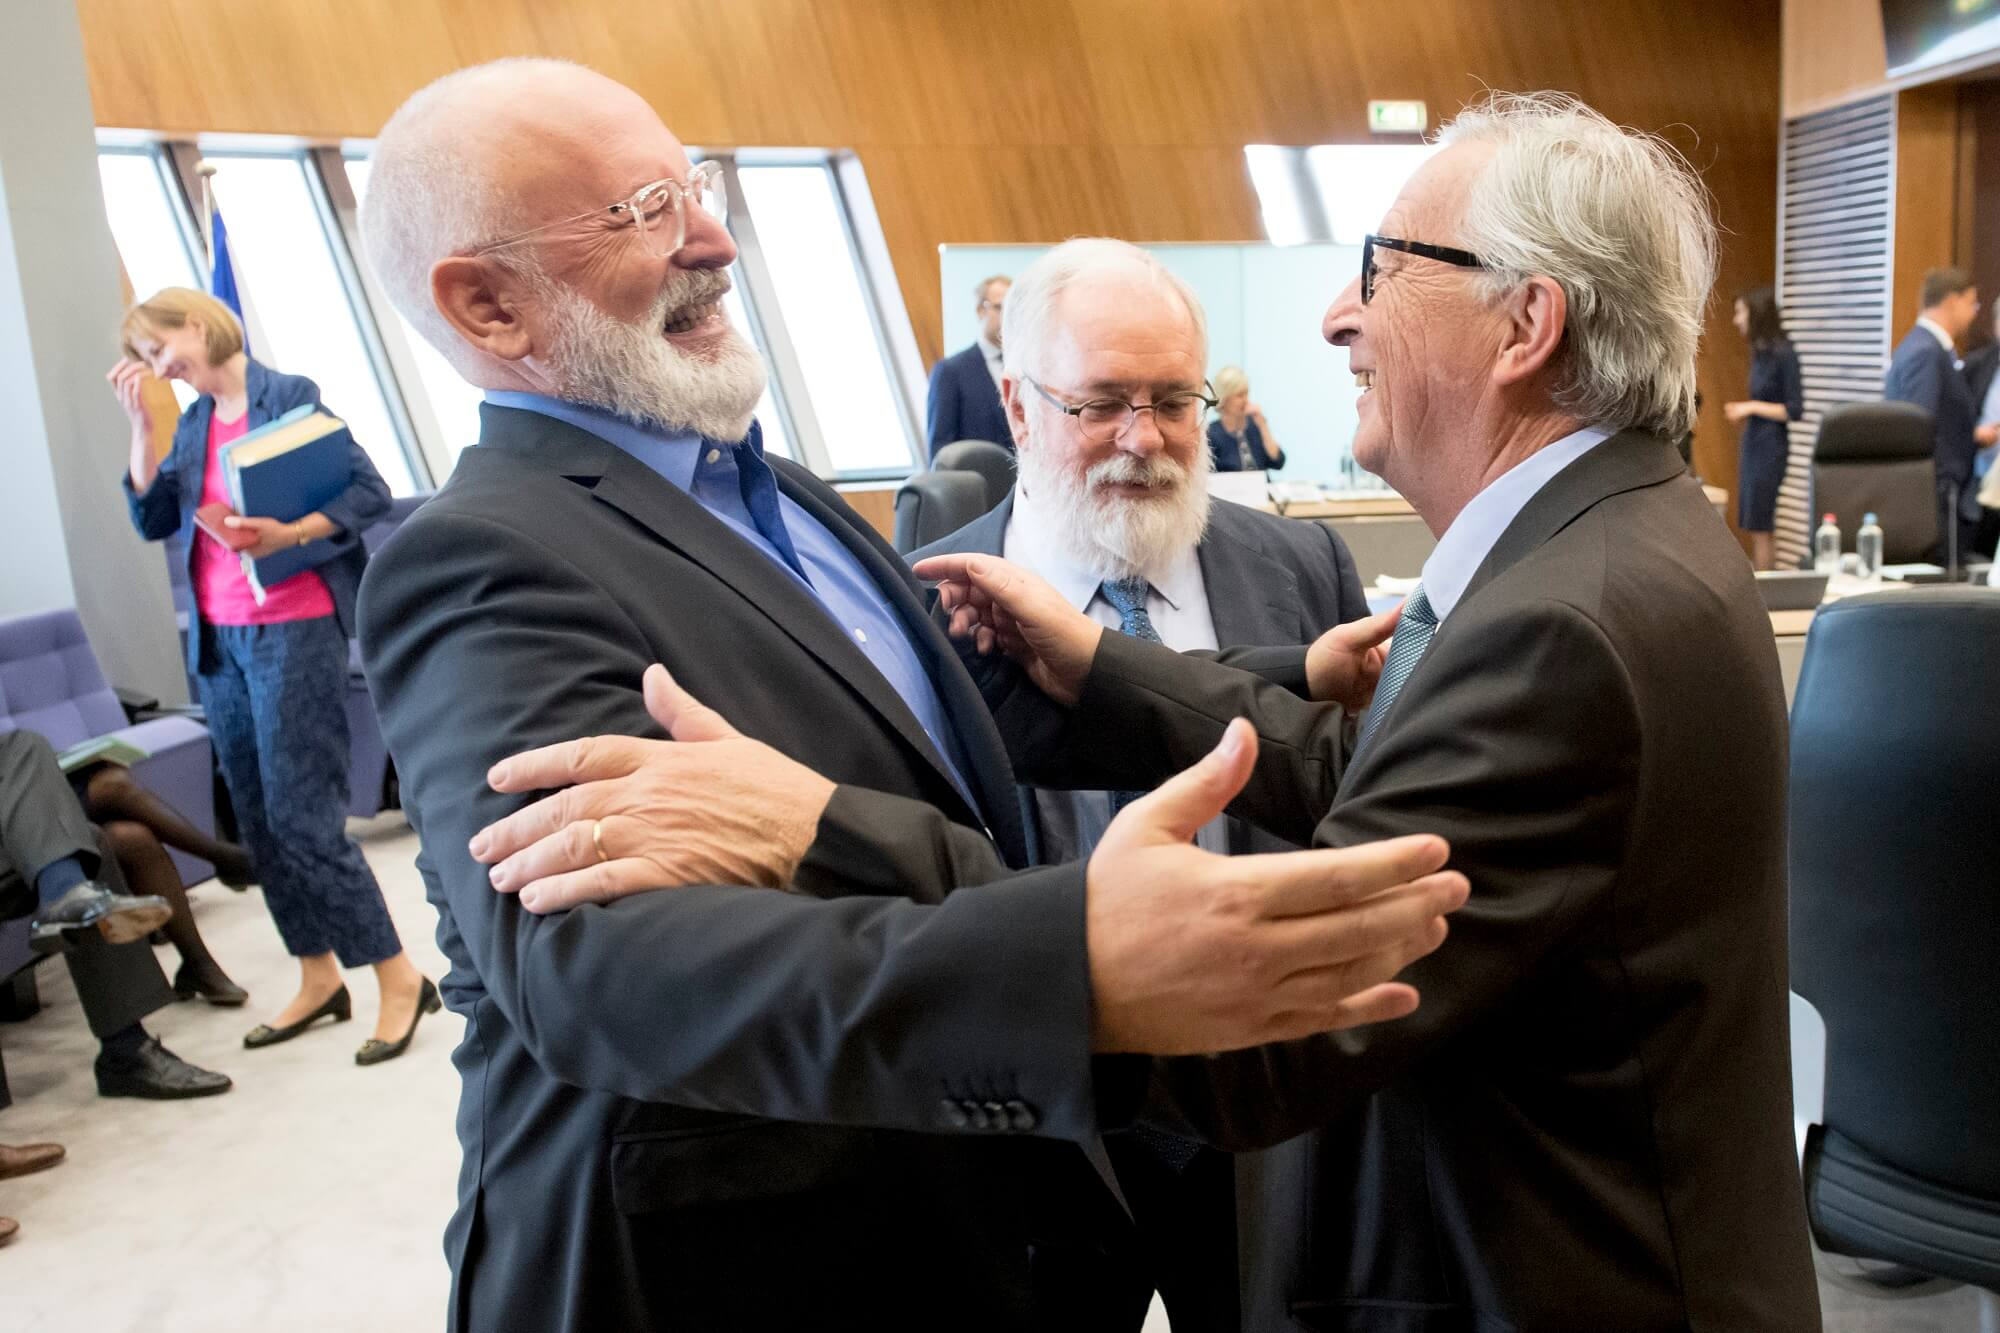 Frans Timmermans met Jean-Claude Juncker begin september 2019 in Brussel. © European Union 2019